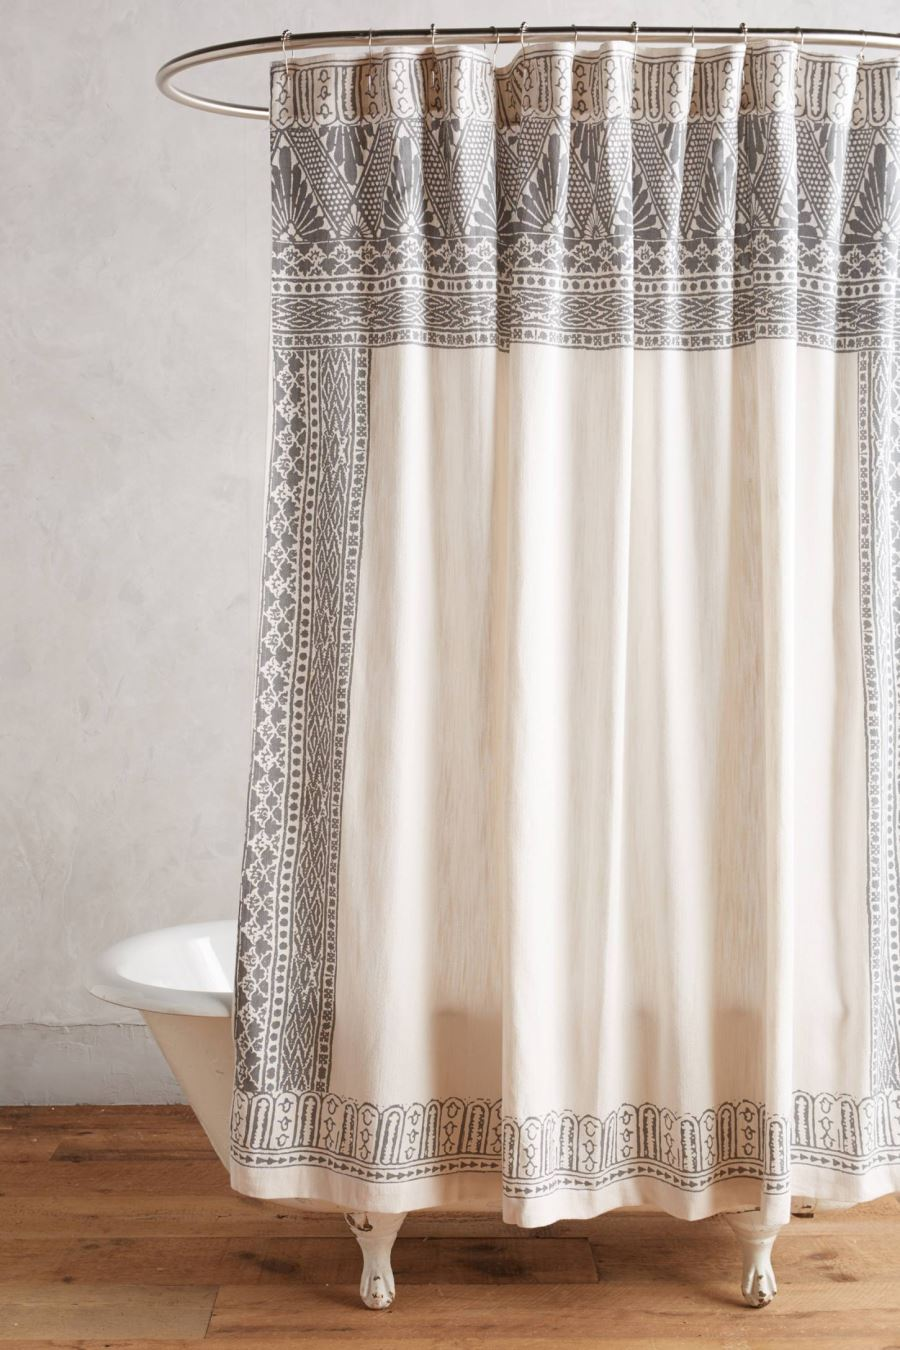 looking curtain butterfly itm bathroom tower eiffel new gift curtains this paris decor rustic shower vintage uphome